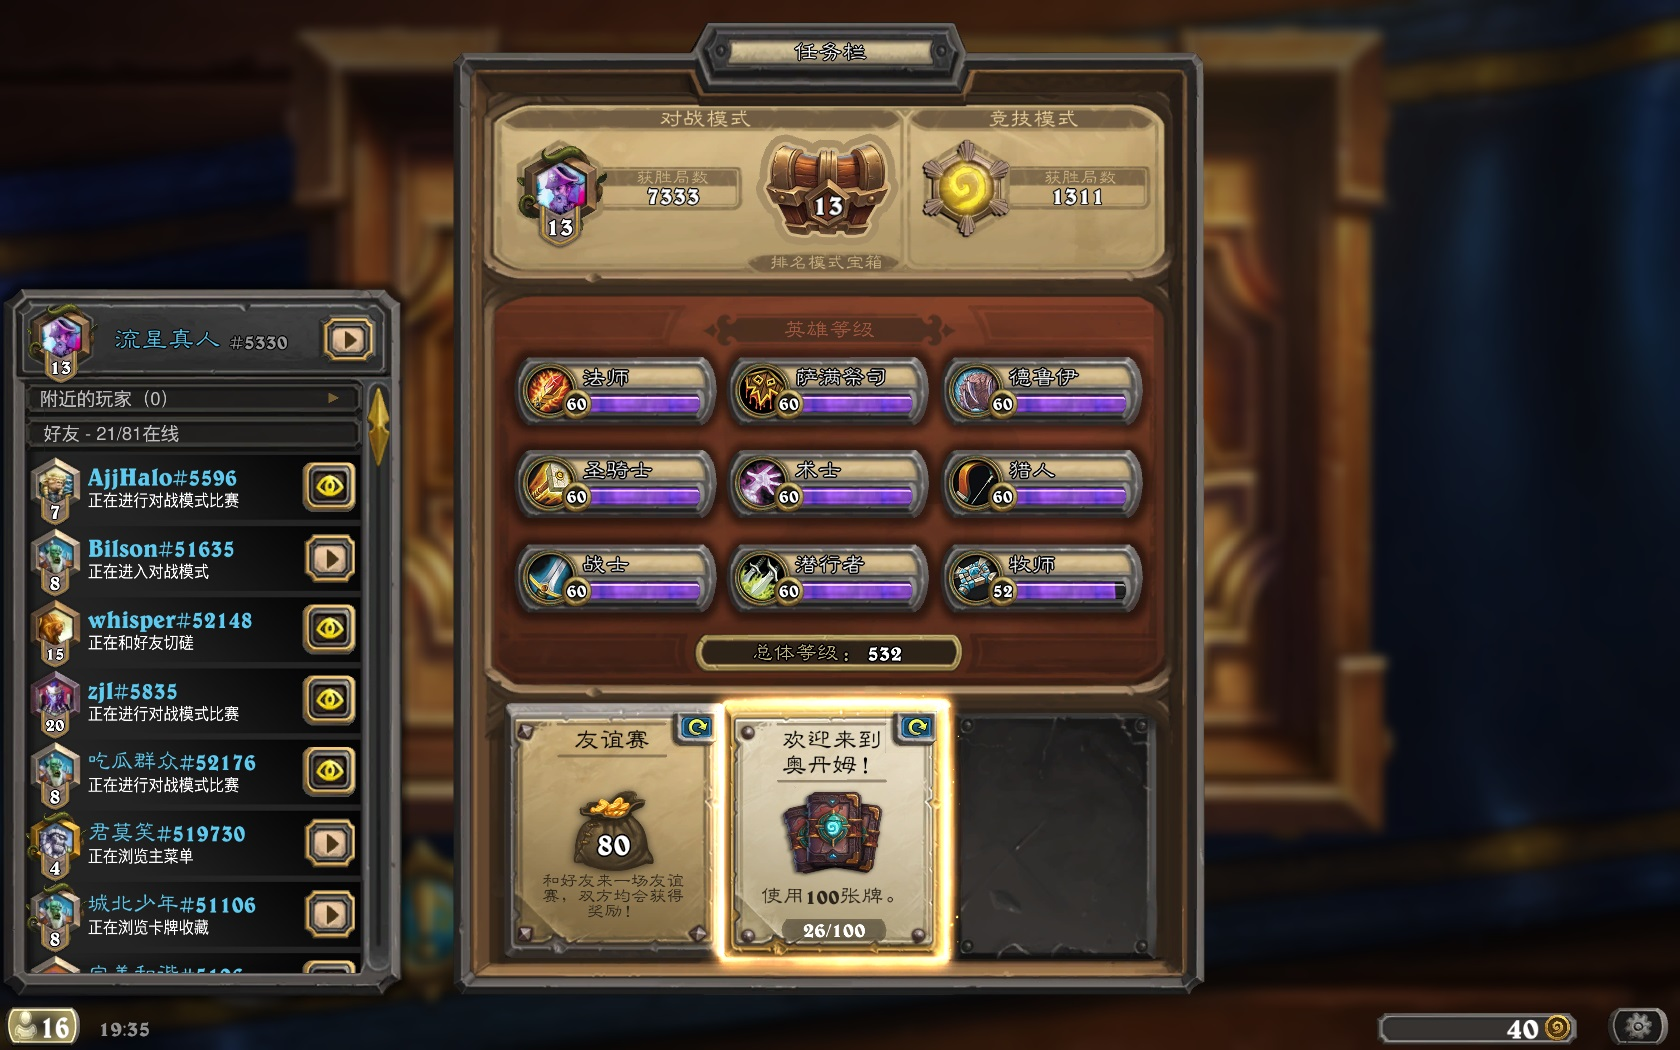 Hearthstone Screenshot 08-07-19 19.35.19.jpg